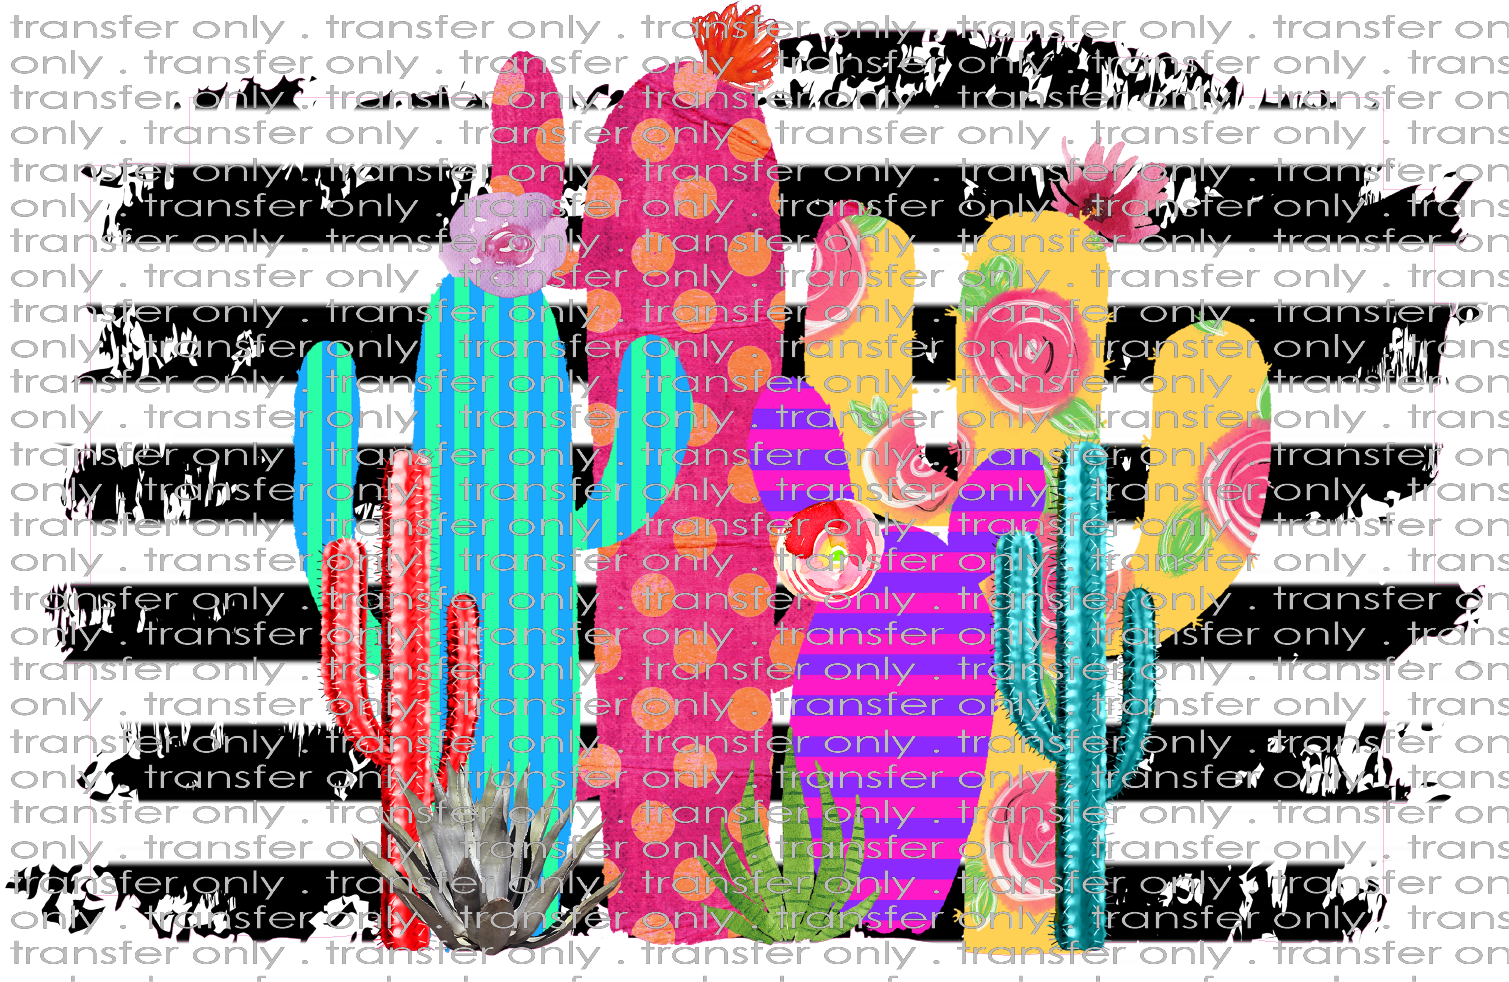 Siser Sw 26 Cactus With Stripe Background Taylored Vinyl